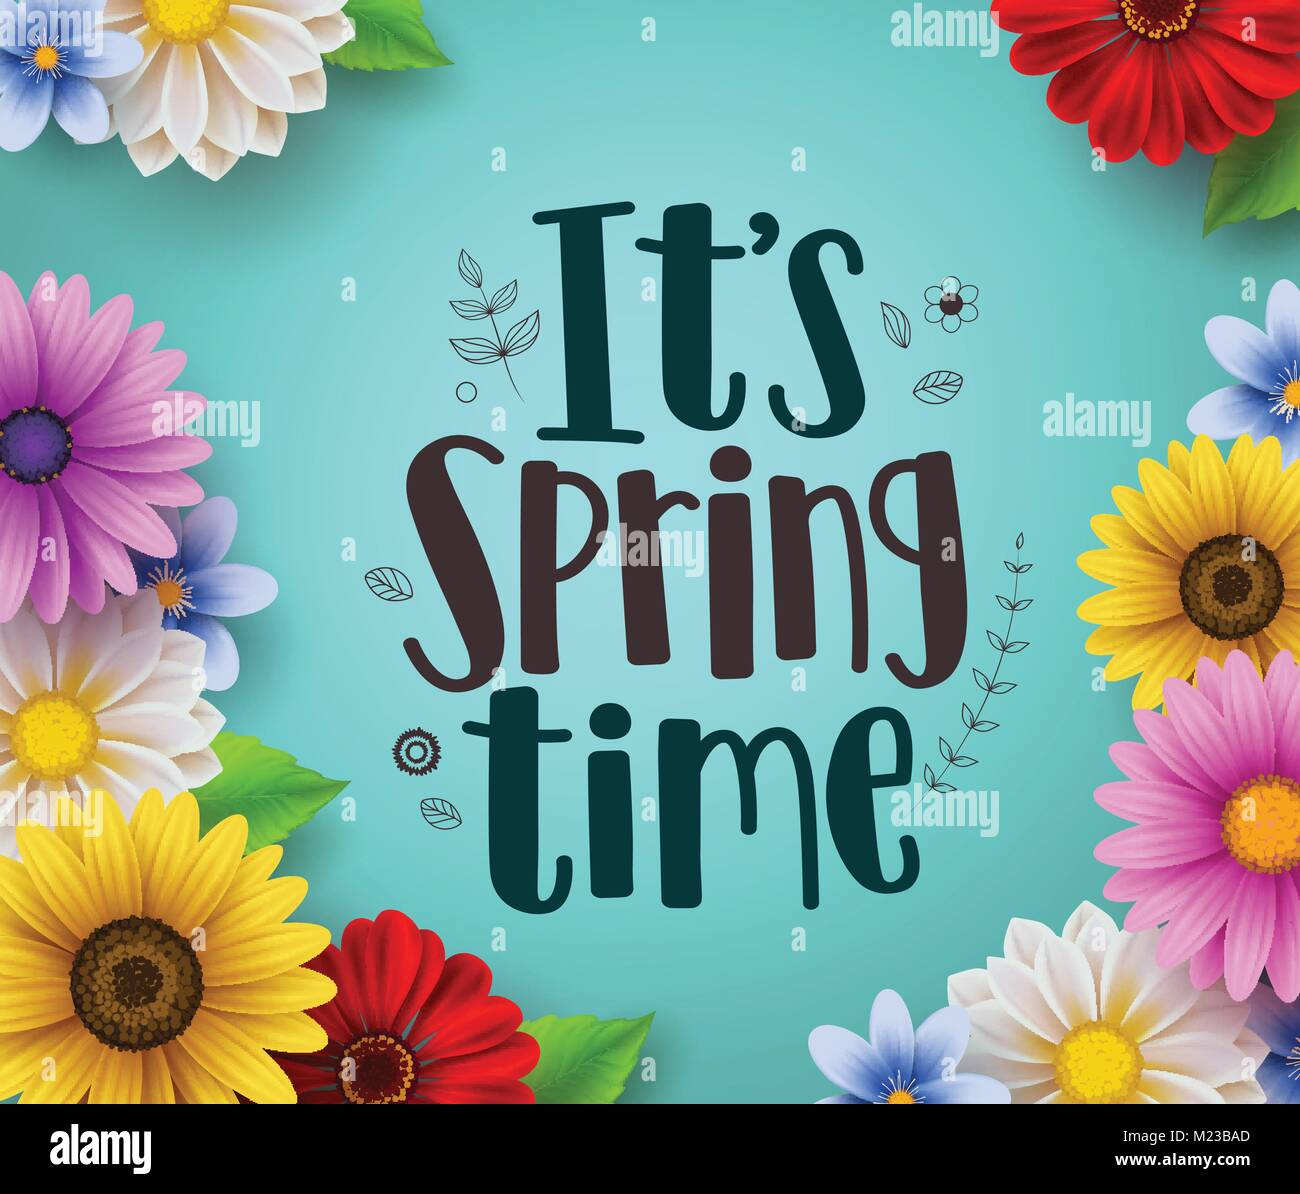 its spring time text vector greeting design with colorful